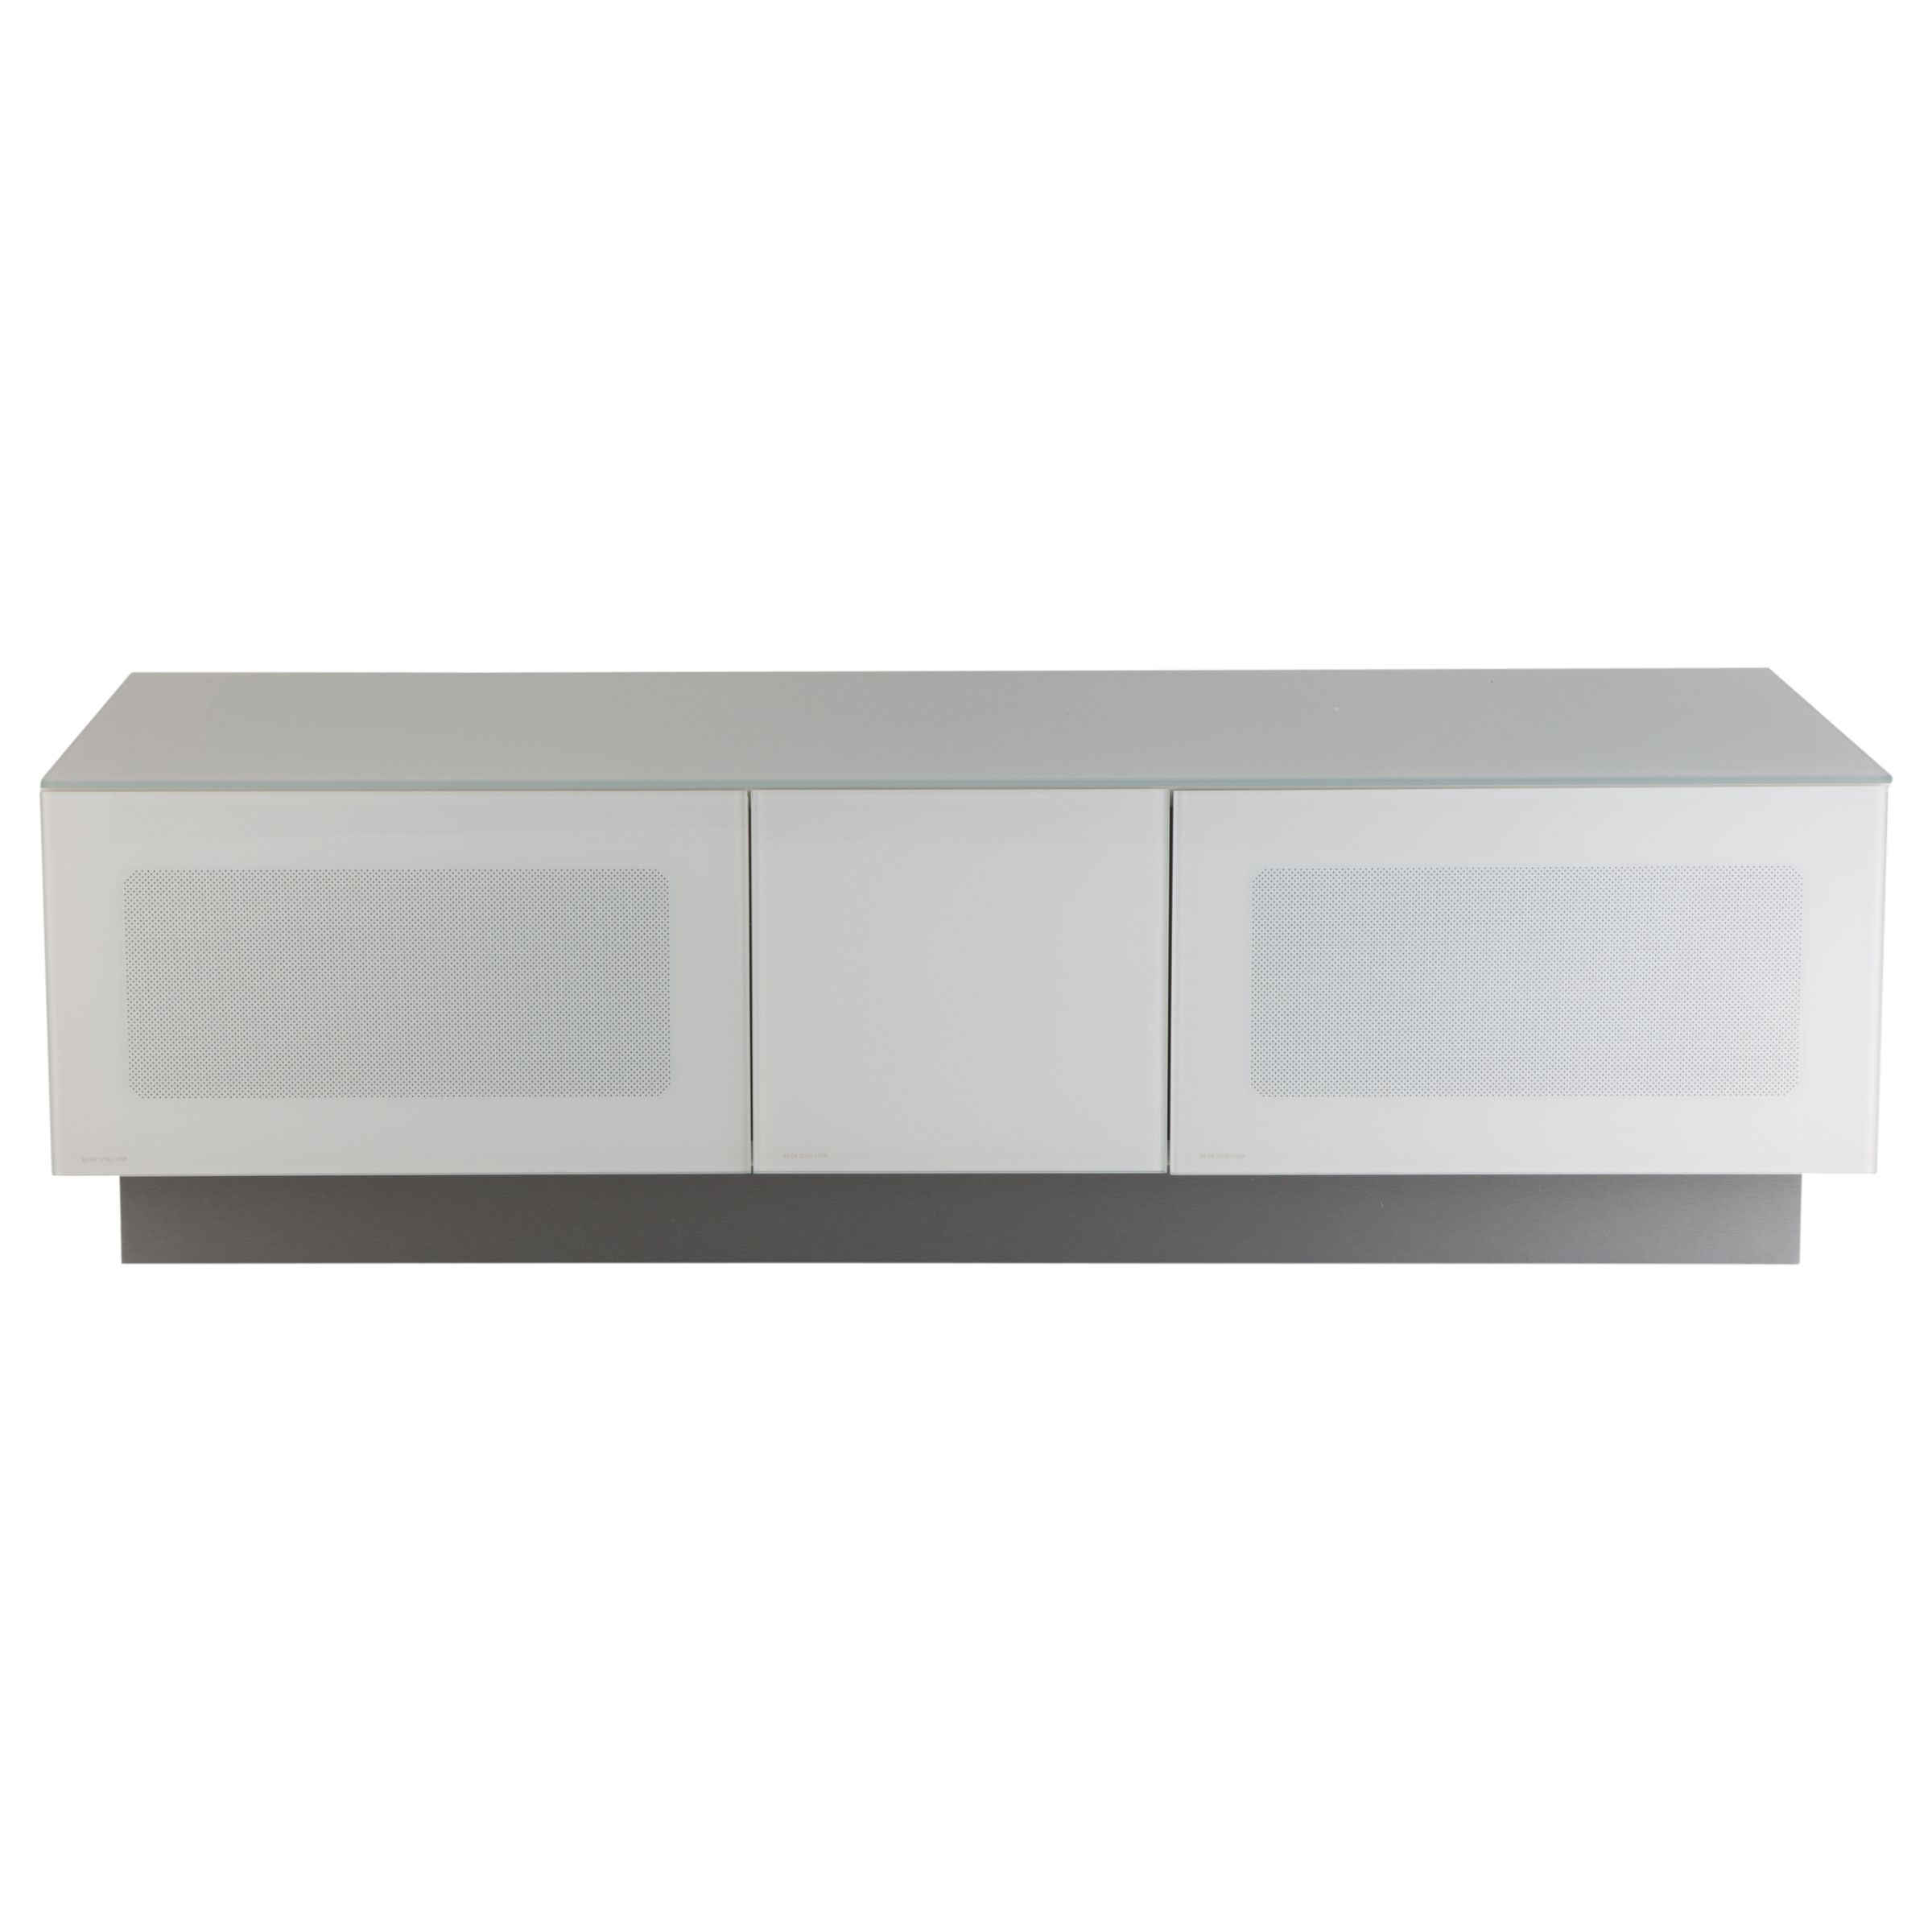 Alphason Alphason Element Modular 1250mm Stand For TVs Up To 60